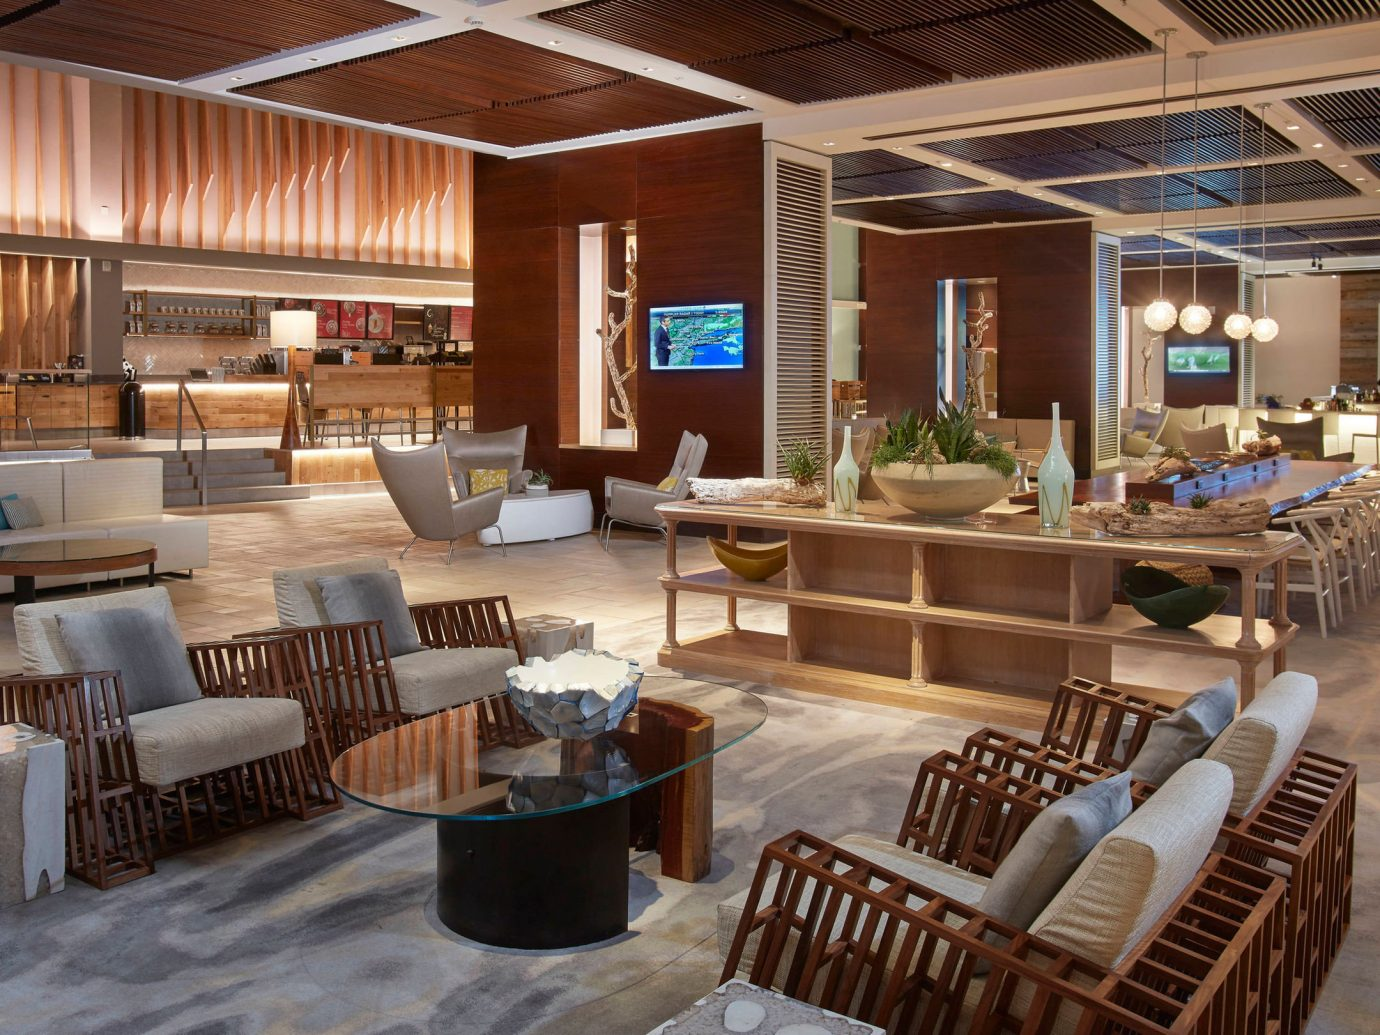 Aruba caribbean Hotels indoor floor window ceiling chair room Living Lobby interior design furniture living room restaurant Dining wood area Island